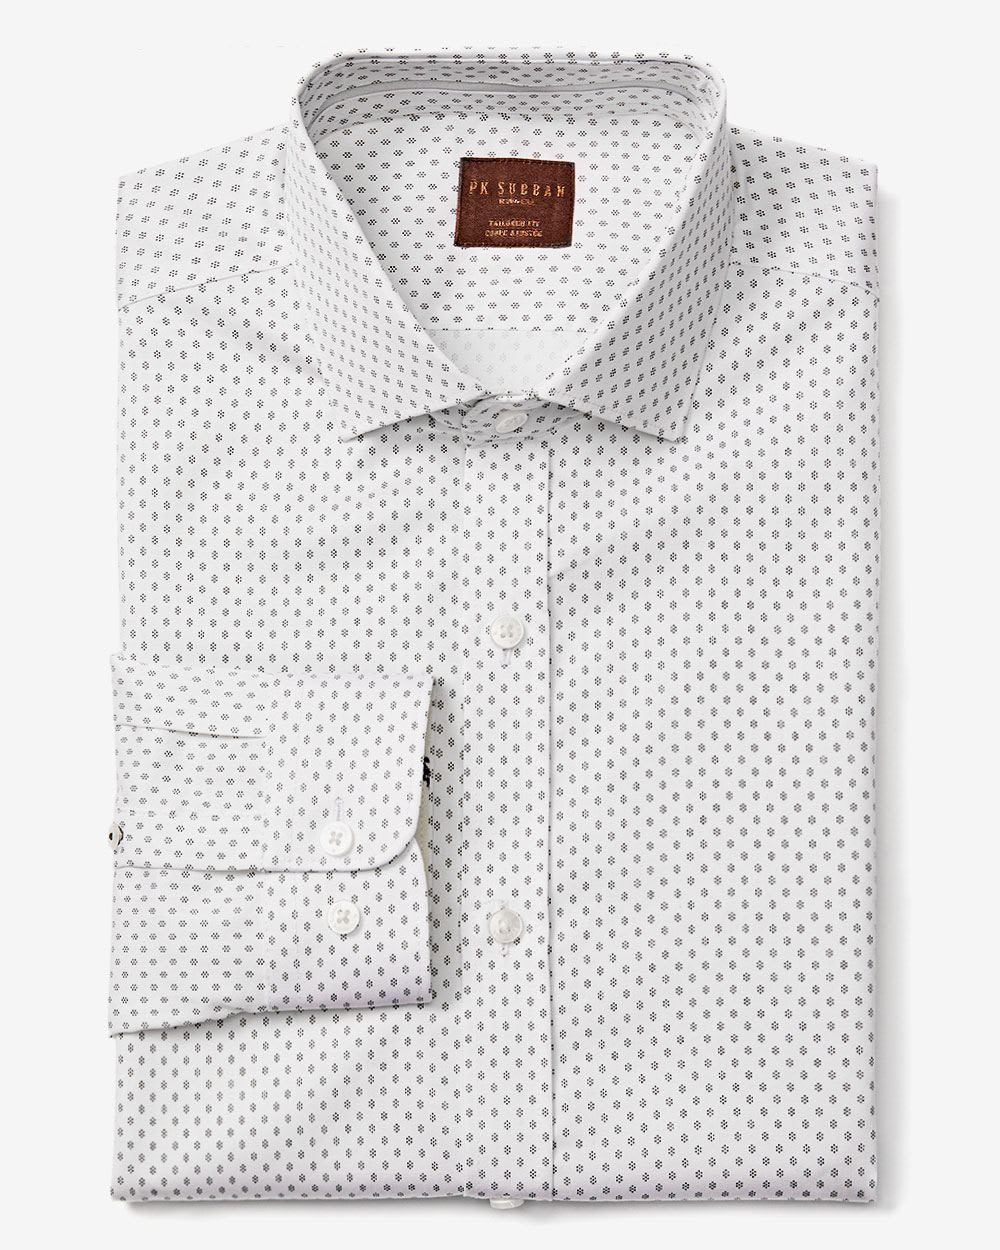 Pk subban tailored fit dotted dress shirt rw co for Tailored fit dress shirts